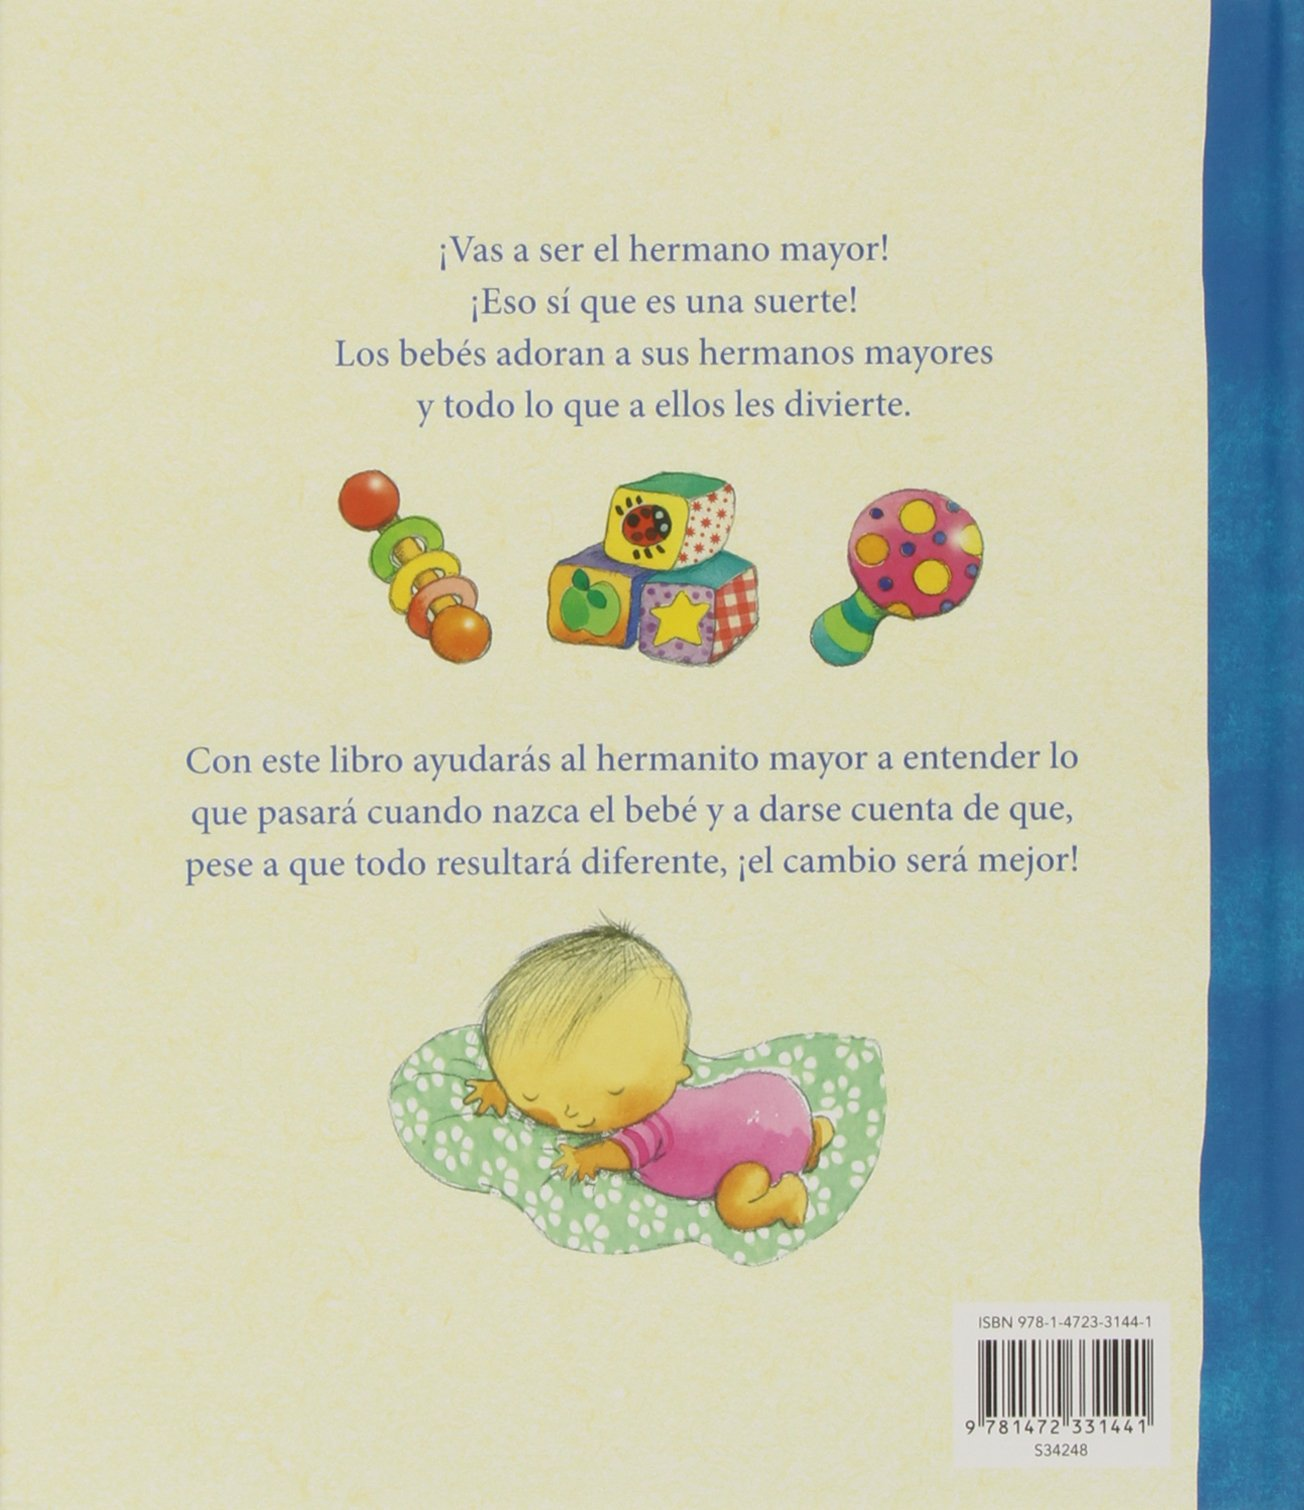 ¡Vas a ser el hermano mayor! (Brother/Sister PIC) (Spanish Edition): Parragon Books: 9781472331441: Amazon.com: Books